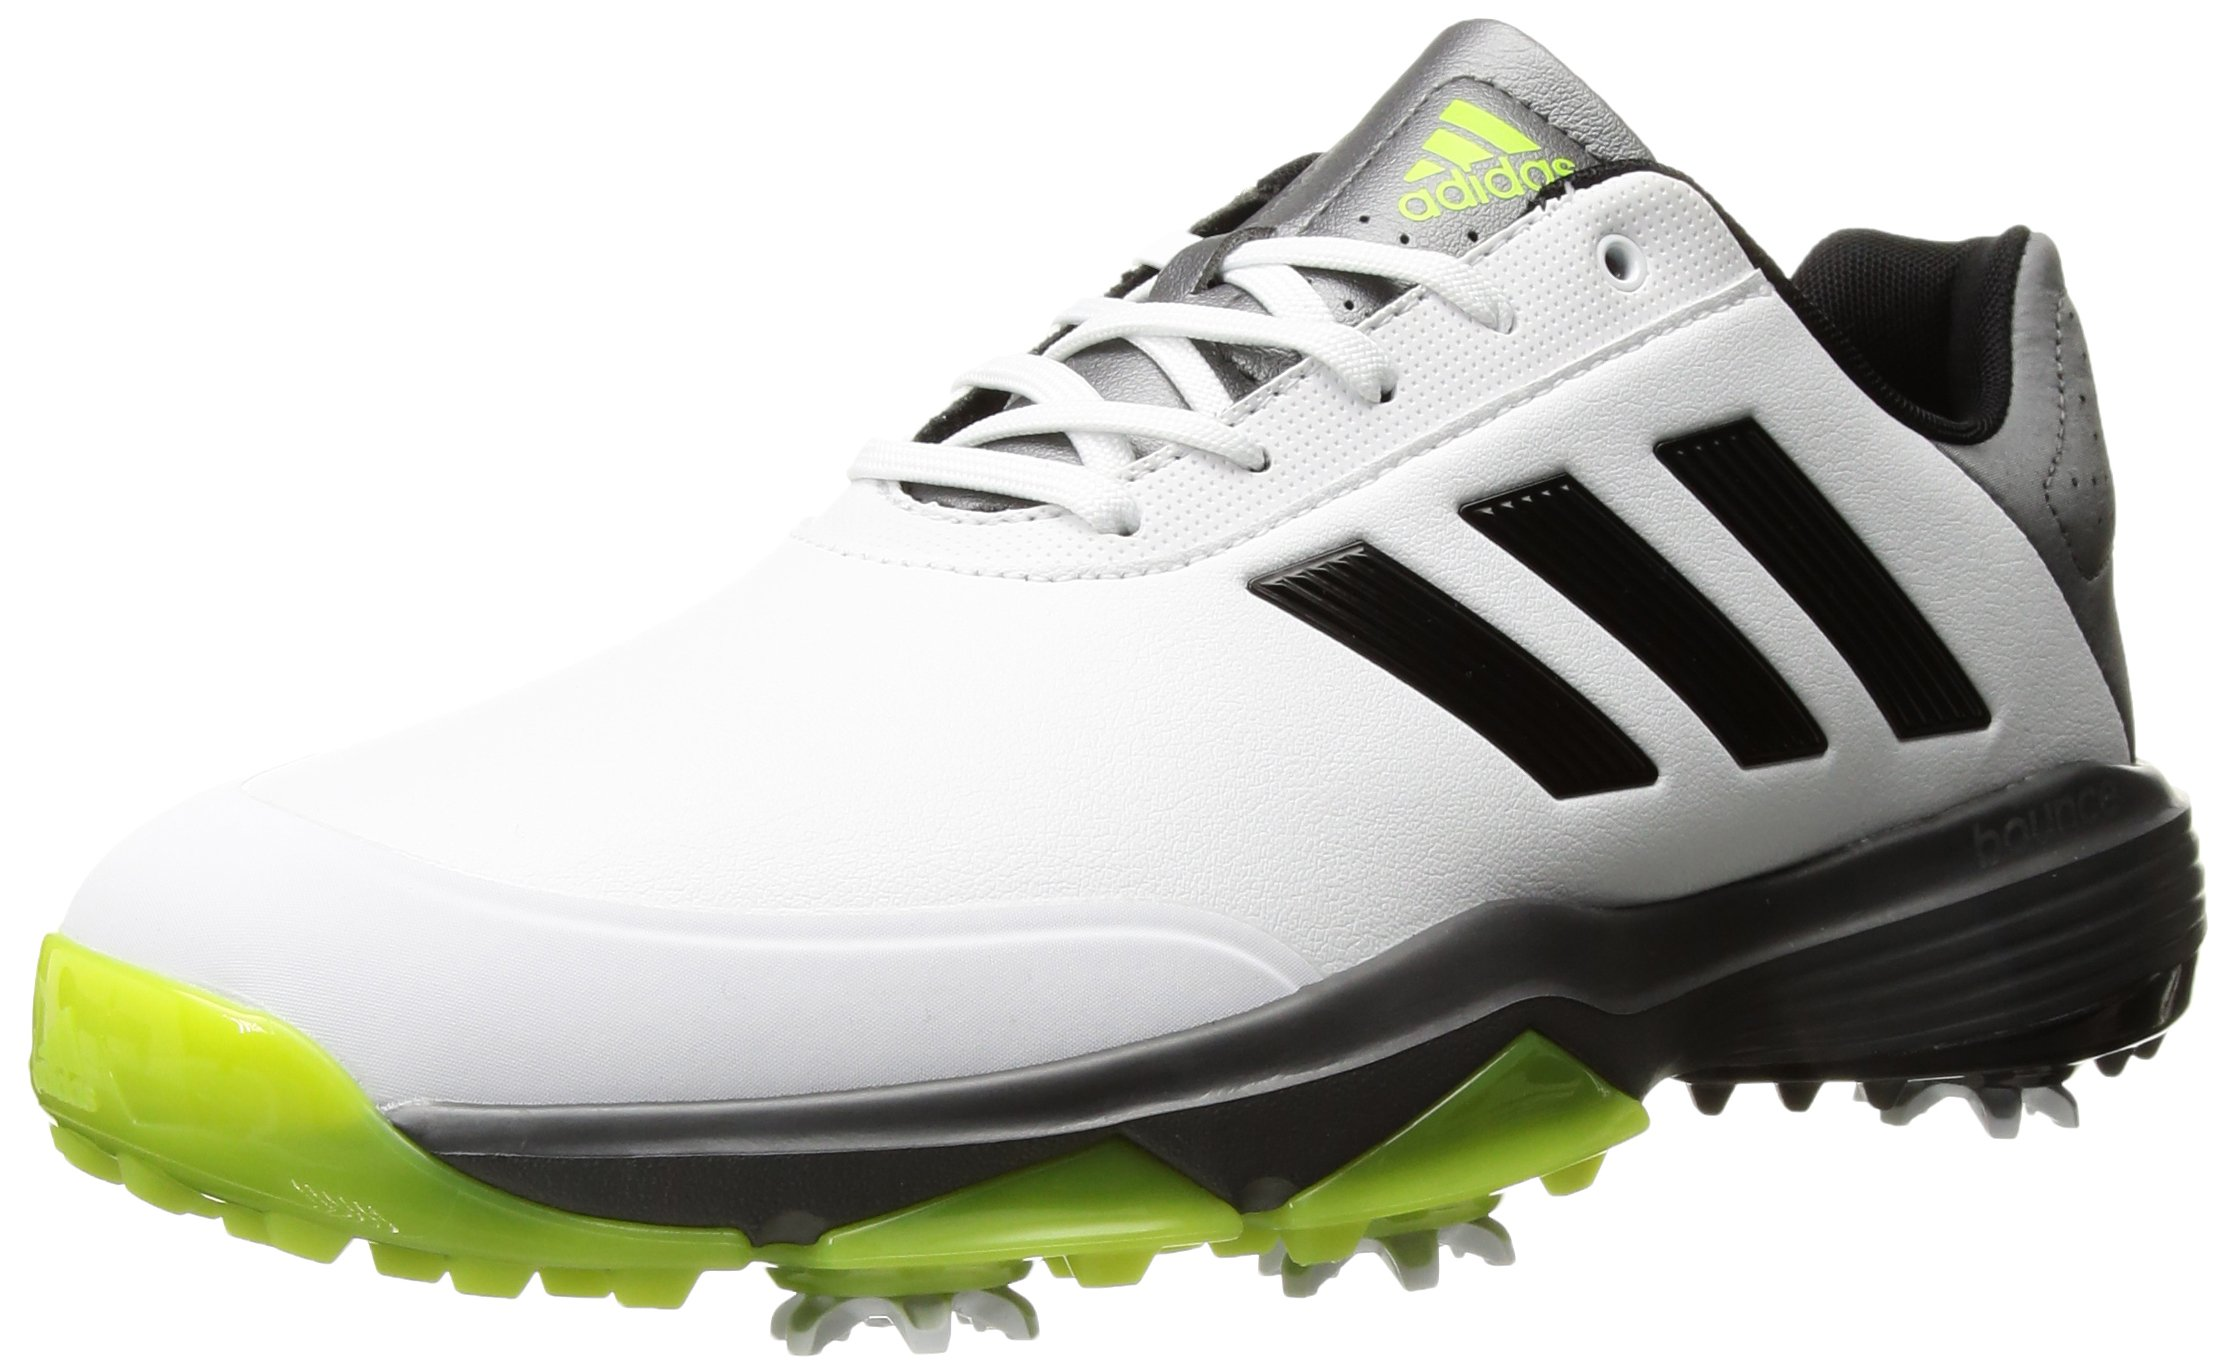 reputable site e2f21 b91b5 Get Quotations · adidas Golf Men s Adipower Bounce Golf-Shoes